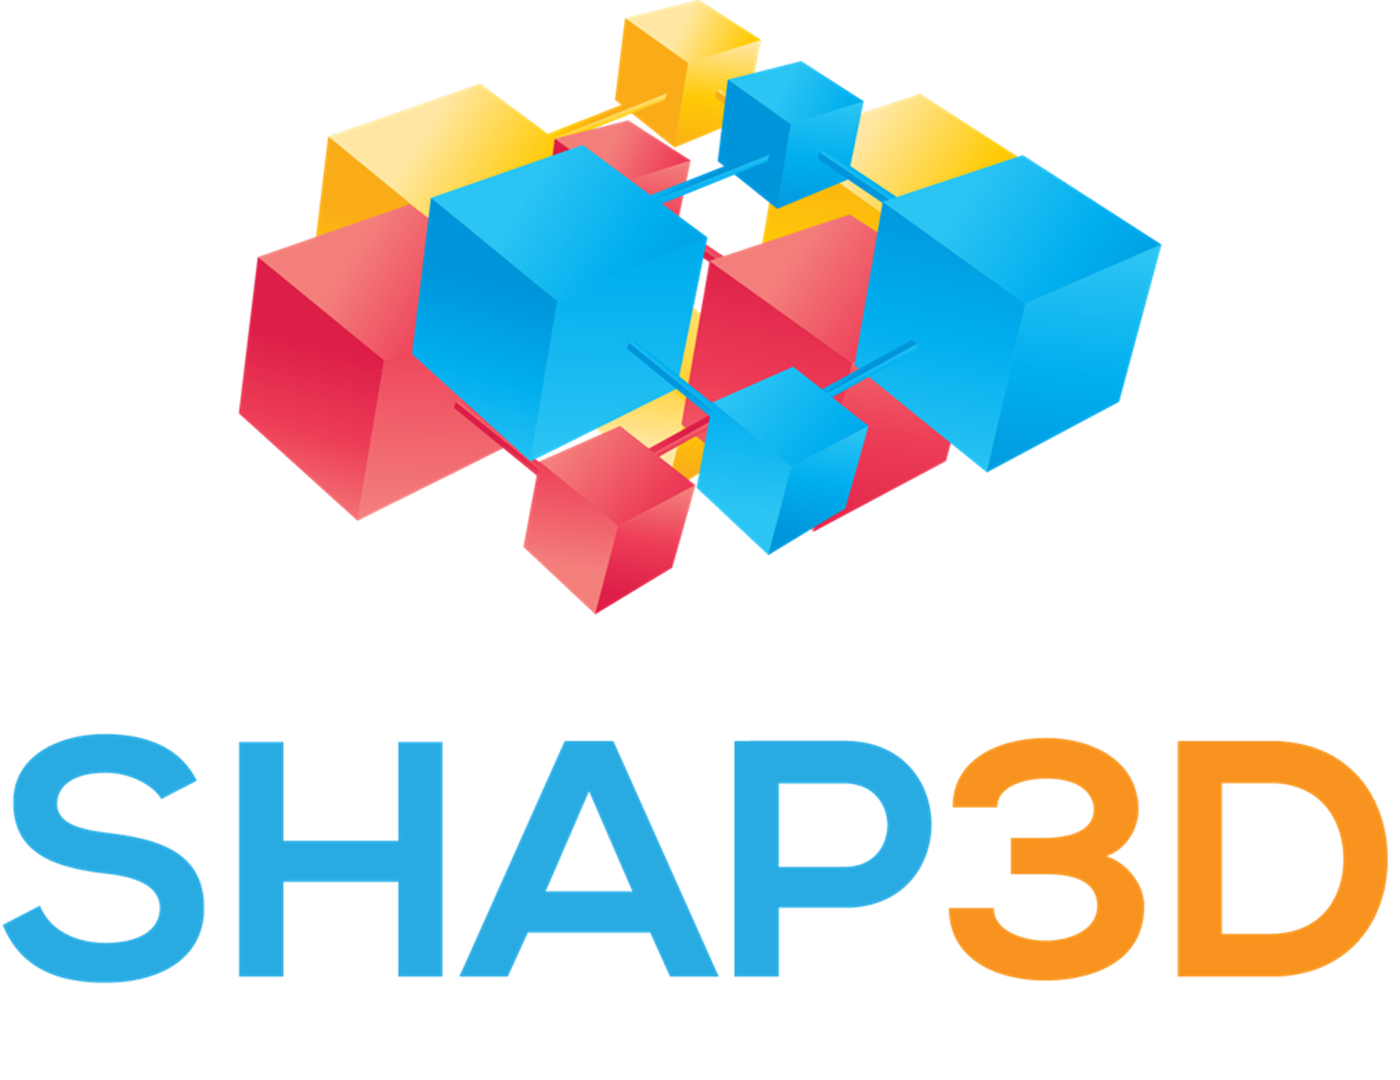 The mission of the SHAP3D Center is to perform pre-competitive research providing the fundamental knowledge for additively printed heterogeneous products that integrate multiple engineering materials with complex 3D structures and diverse functionality.